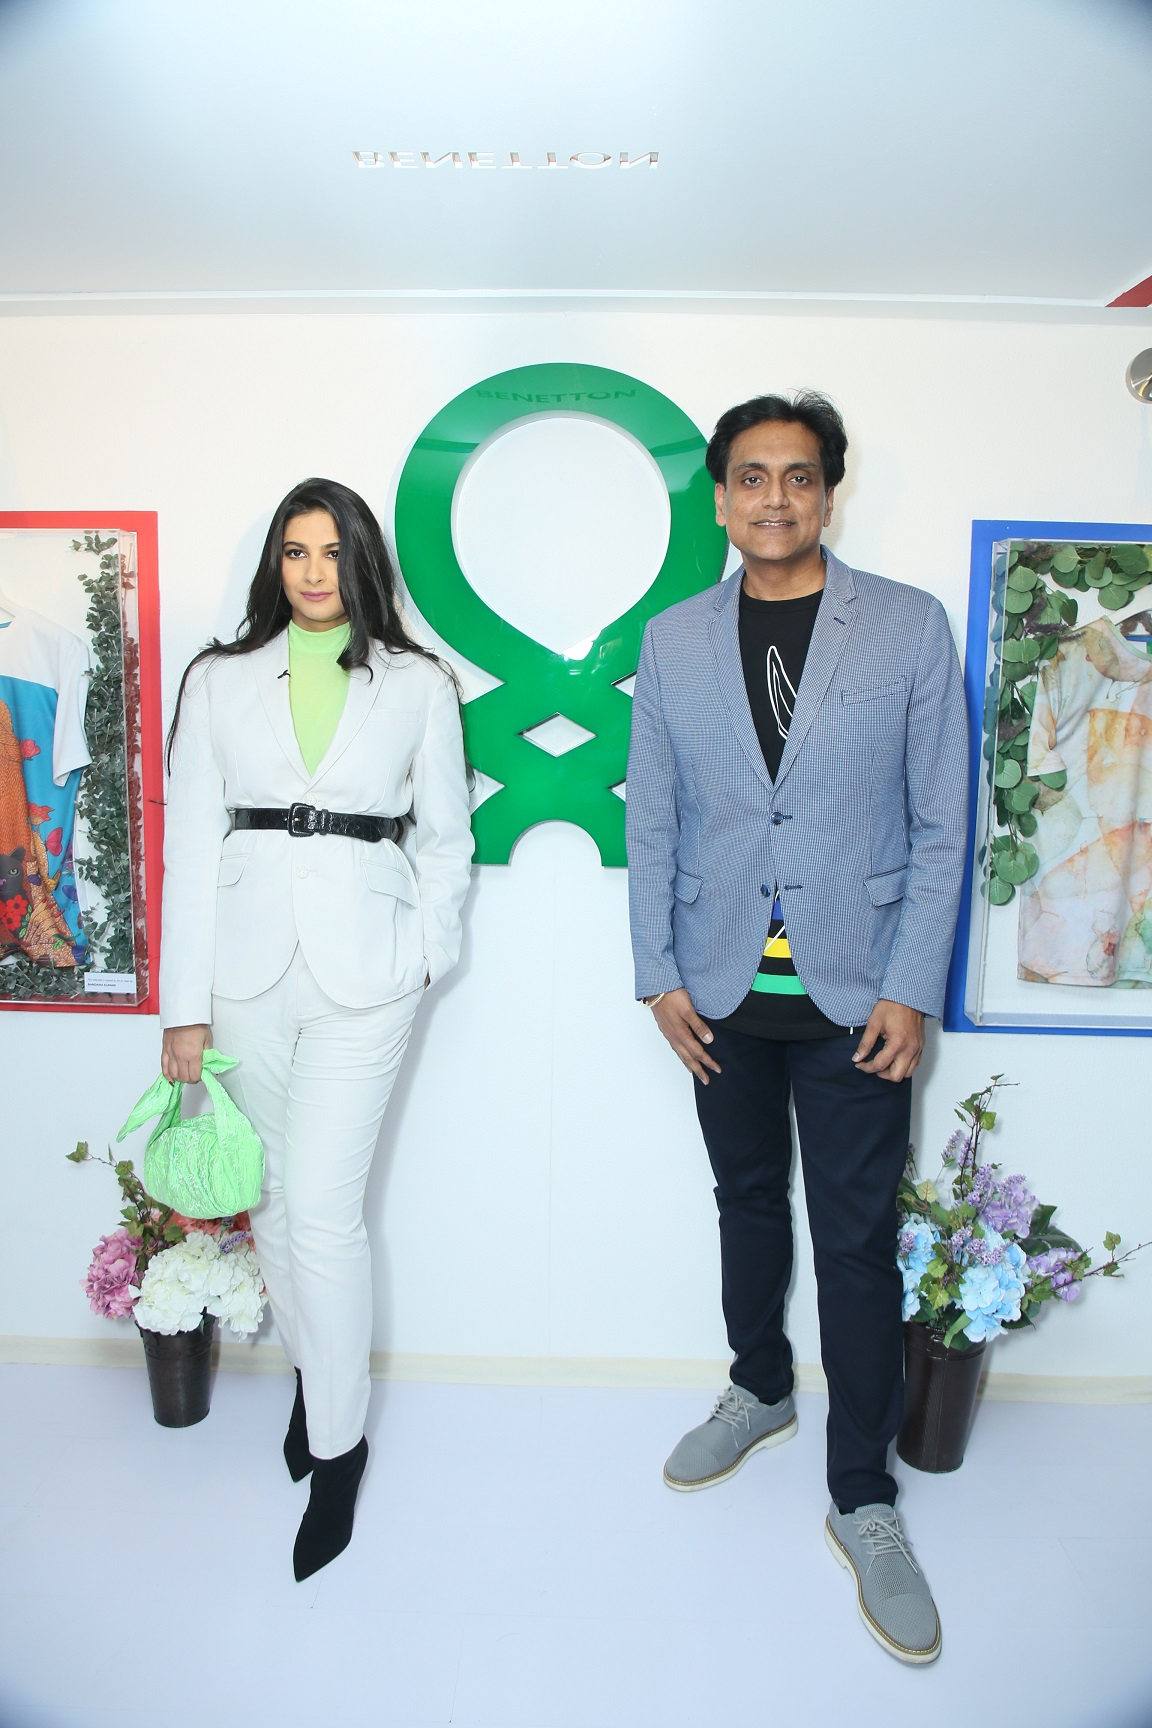 Talent Powerhouse Rhea Kapoor & Sundeep Chugh - MD & CEO of Benetton India at the launch of Benetton's collectible art line (3)